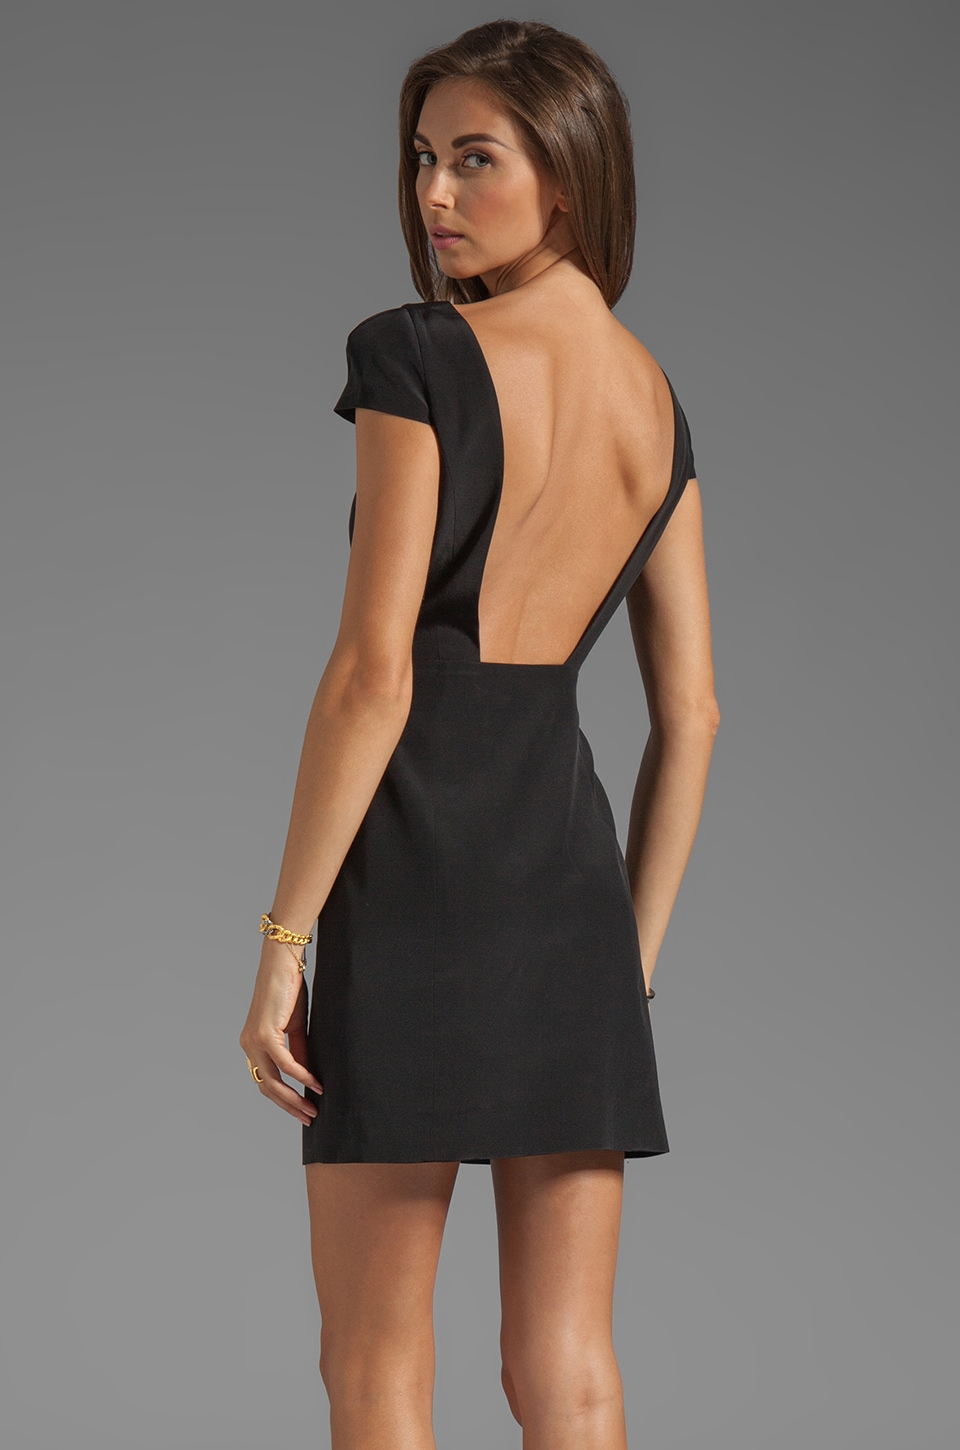 Tibi Silk Cap Sleeve Dress in Black